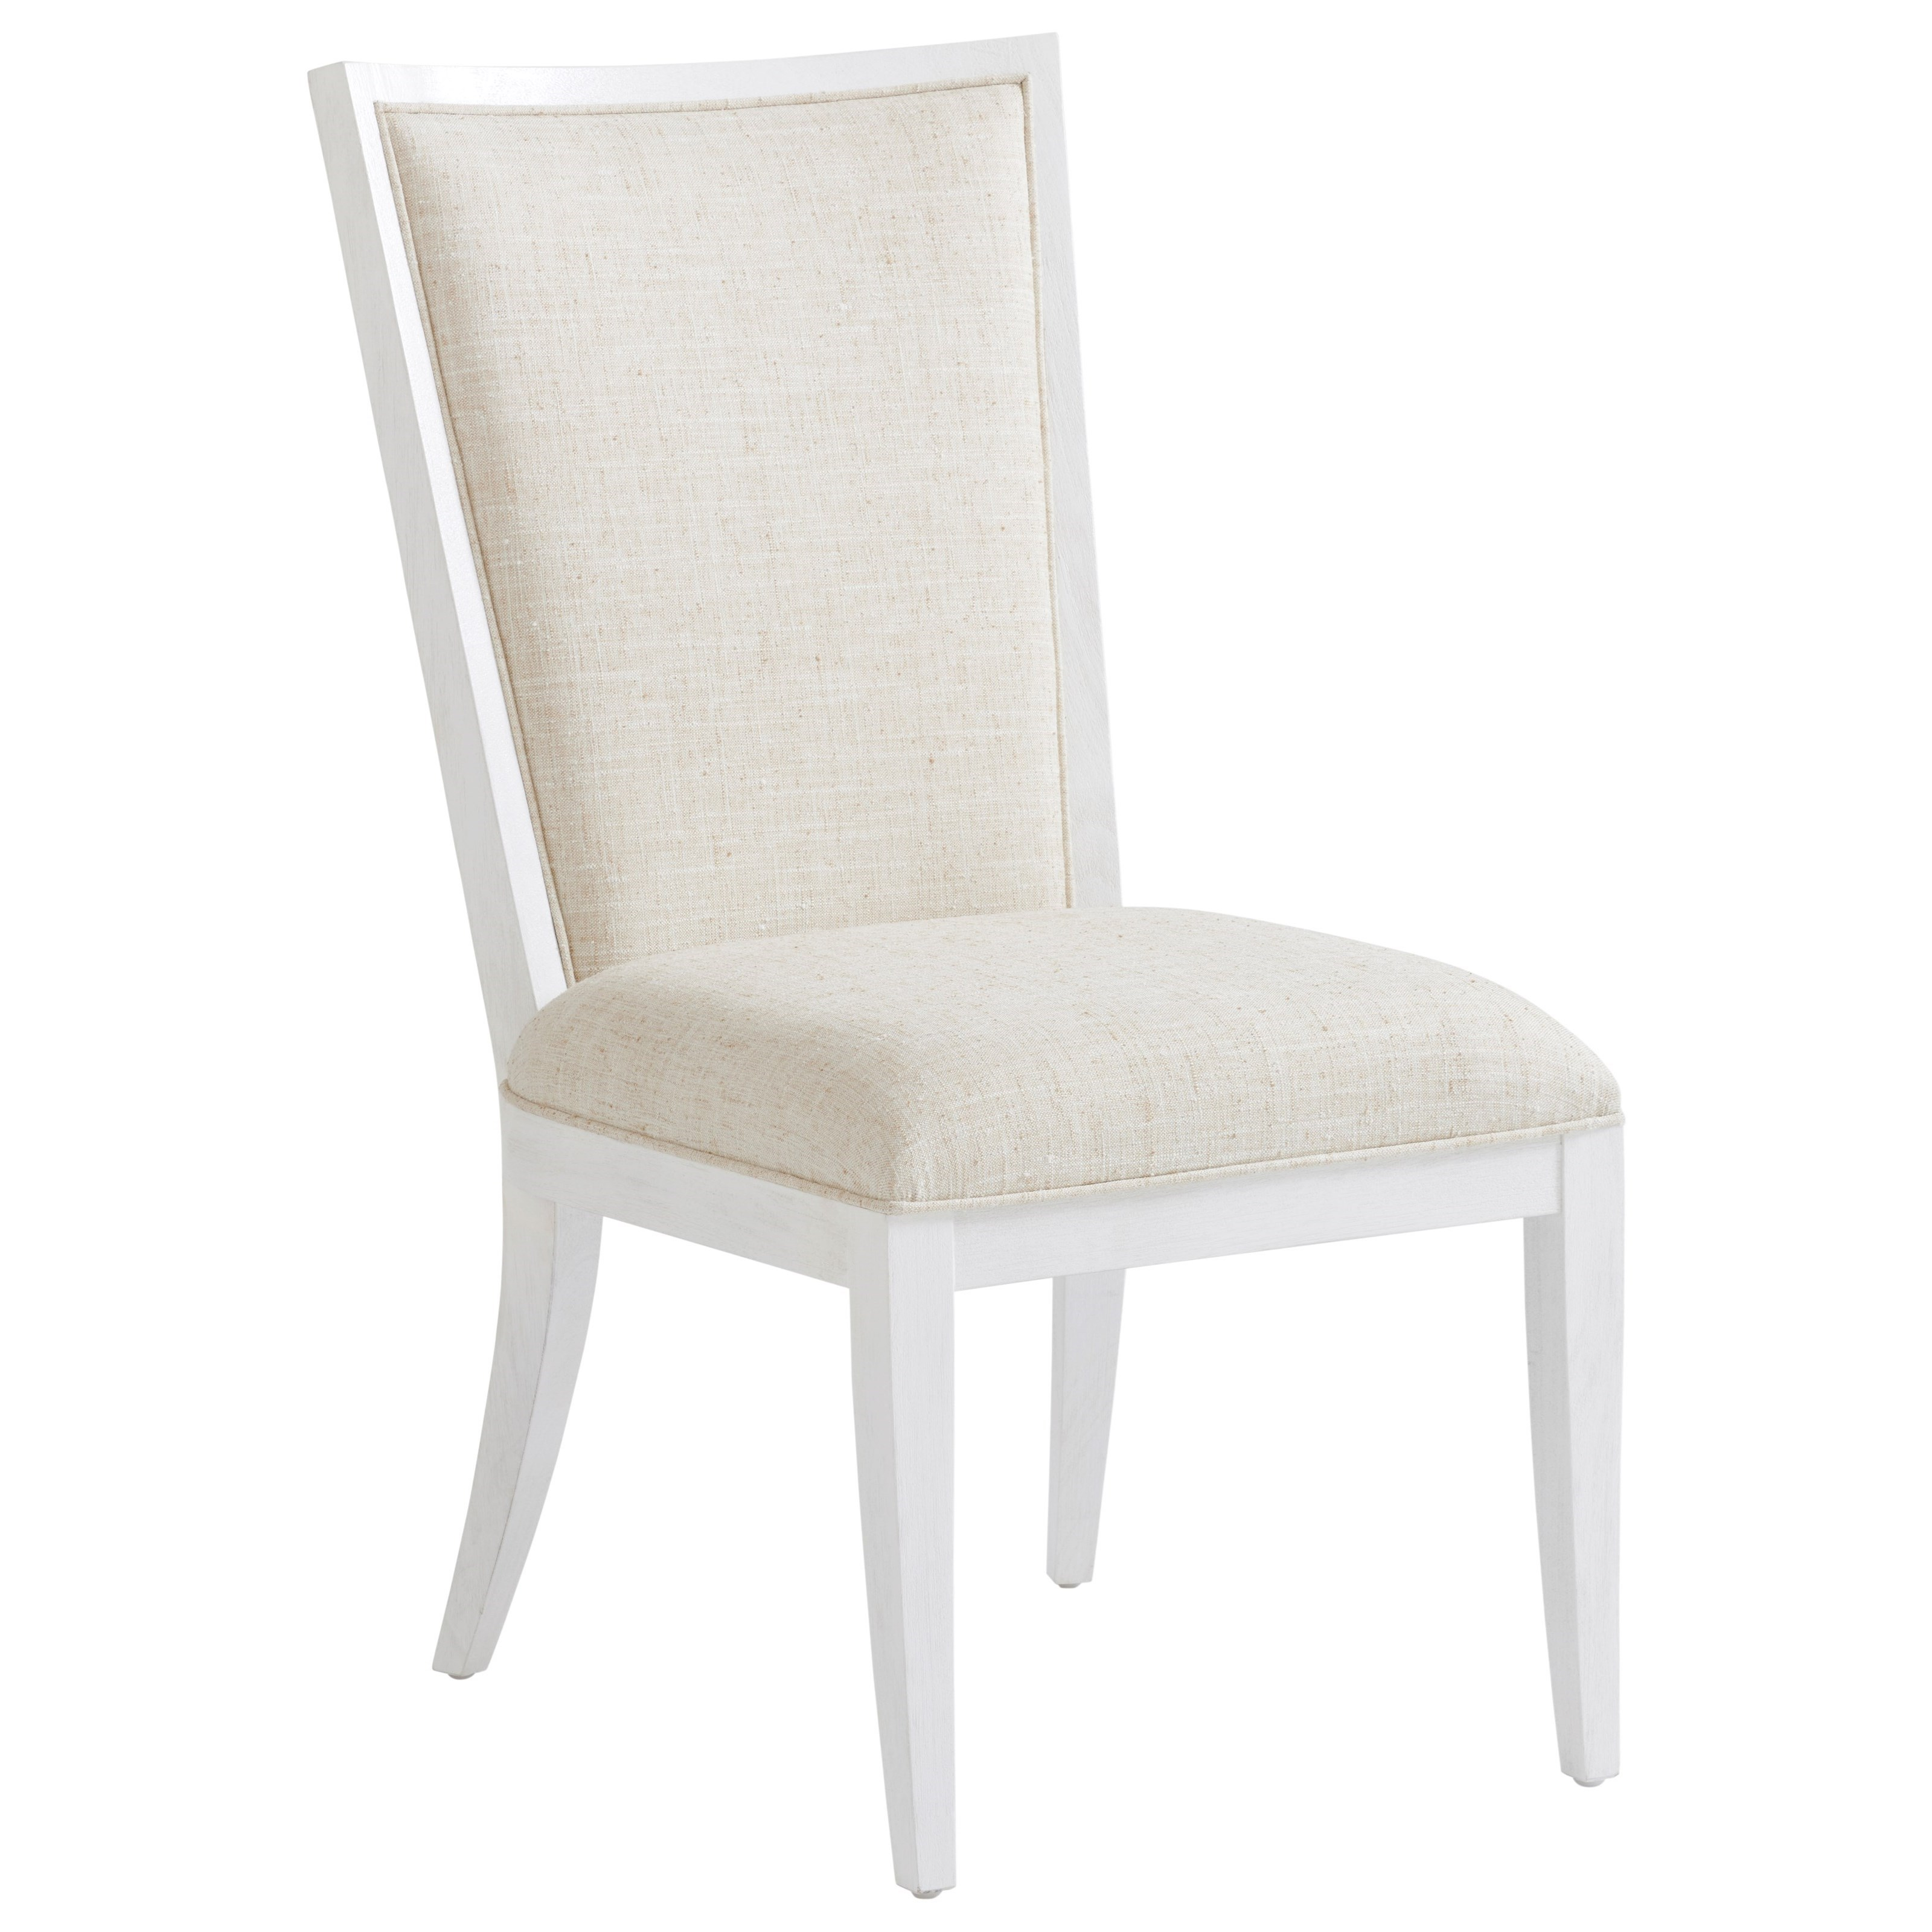 Ocean Breeze Sea Winds Upholstered Side Chair by Tommy Bahama Home at C. S. Wo & Sons Hawaii